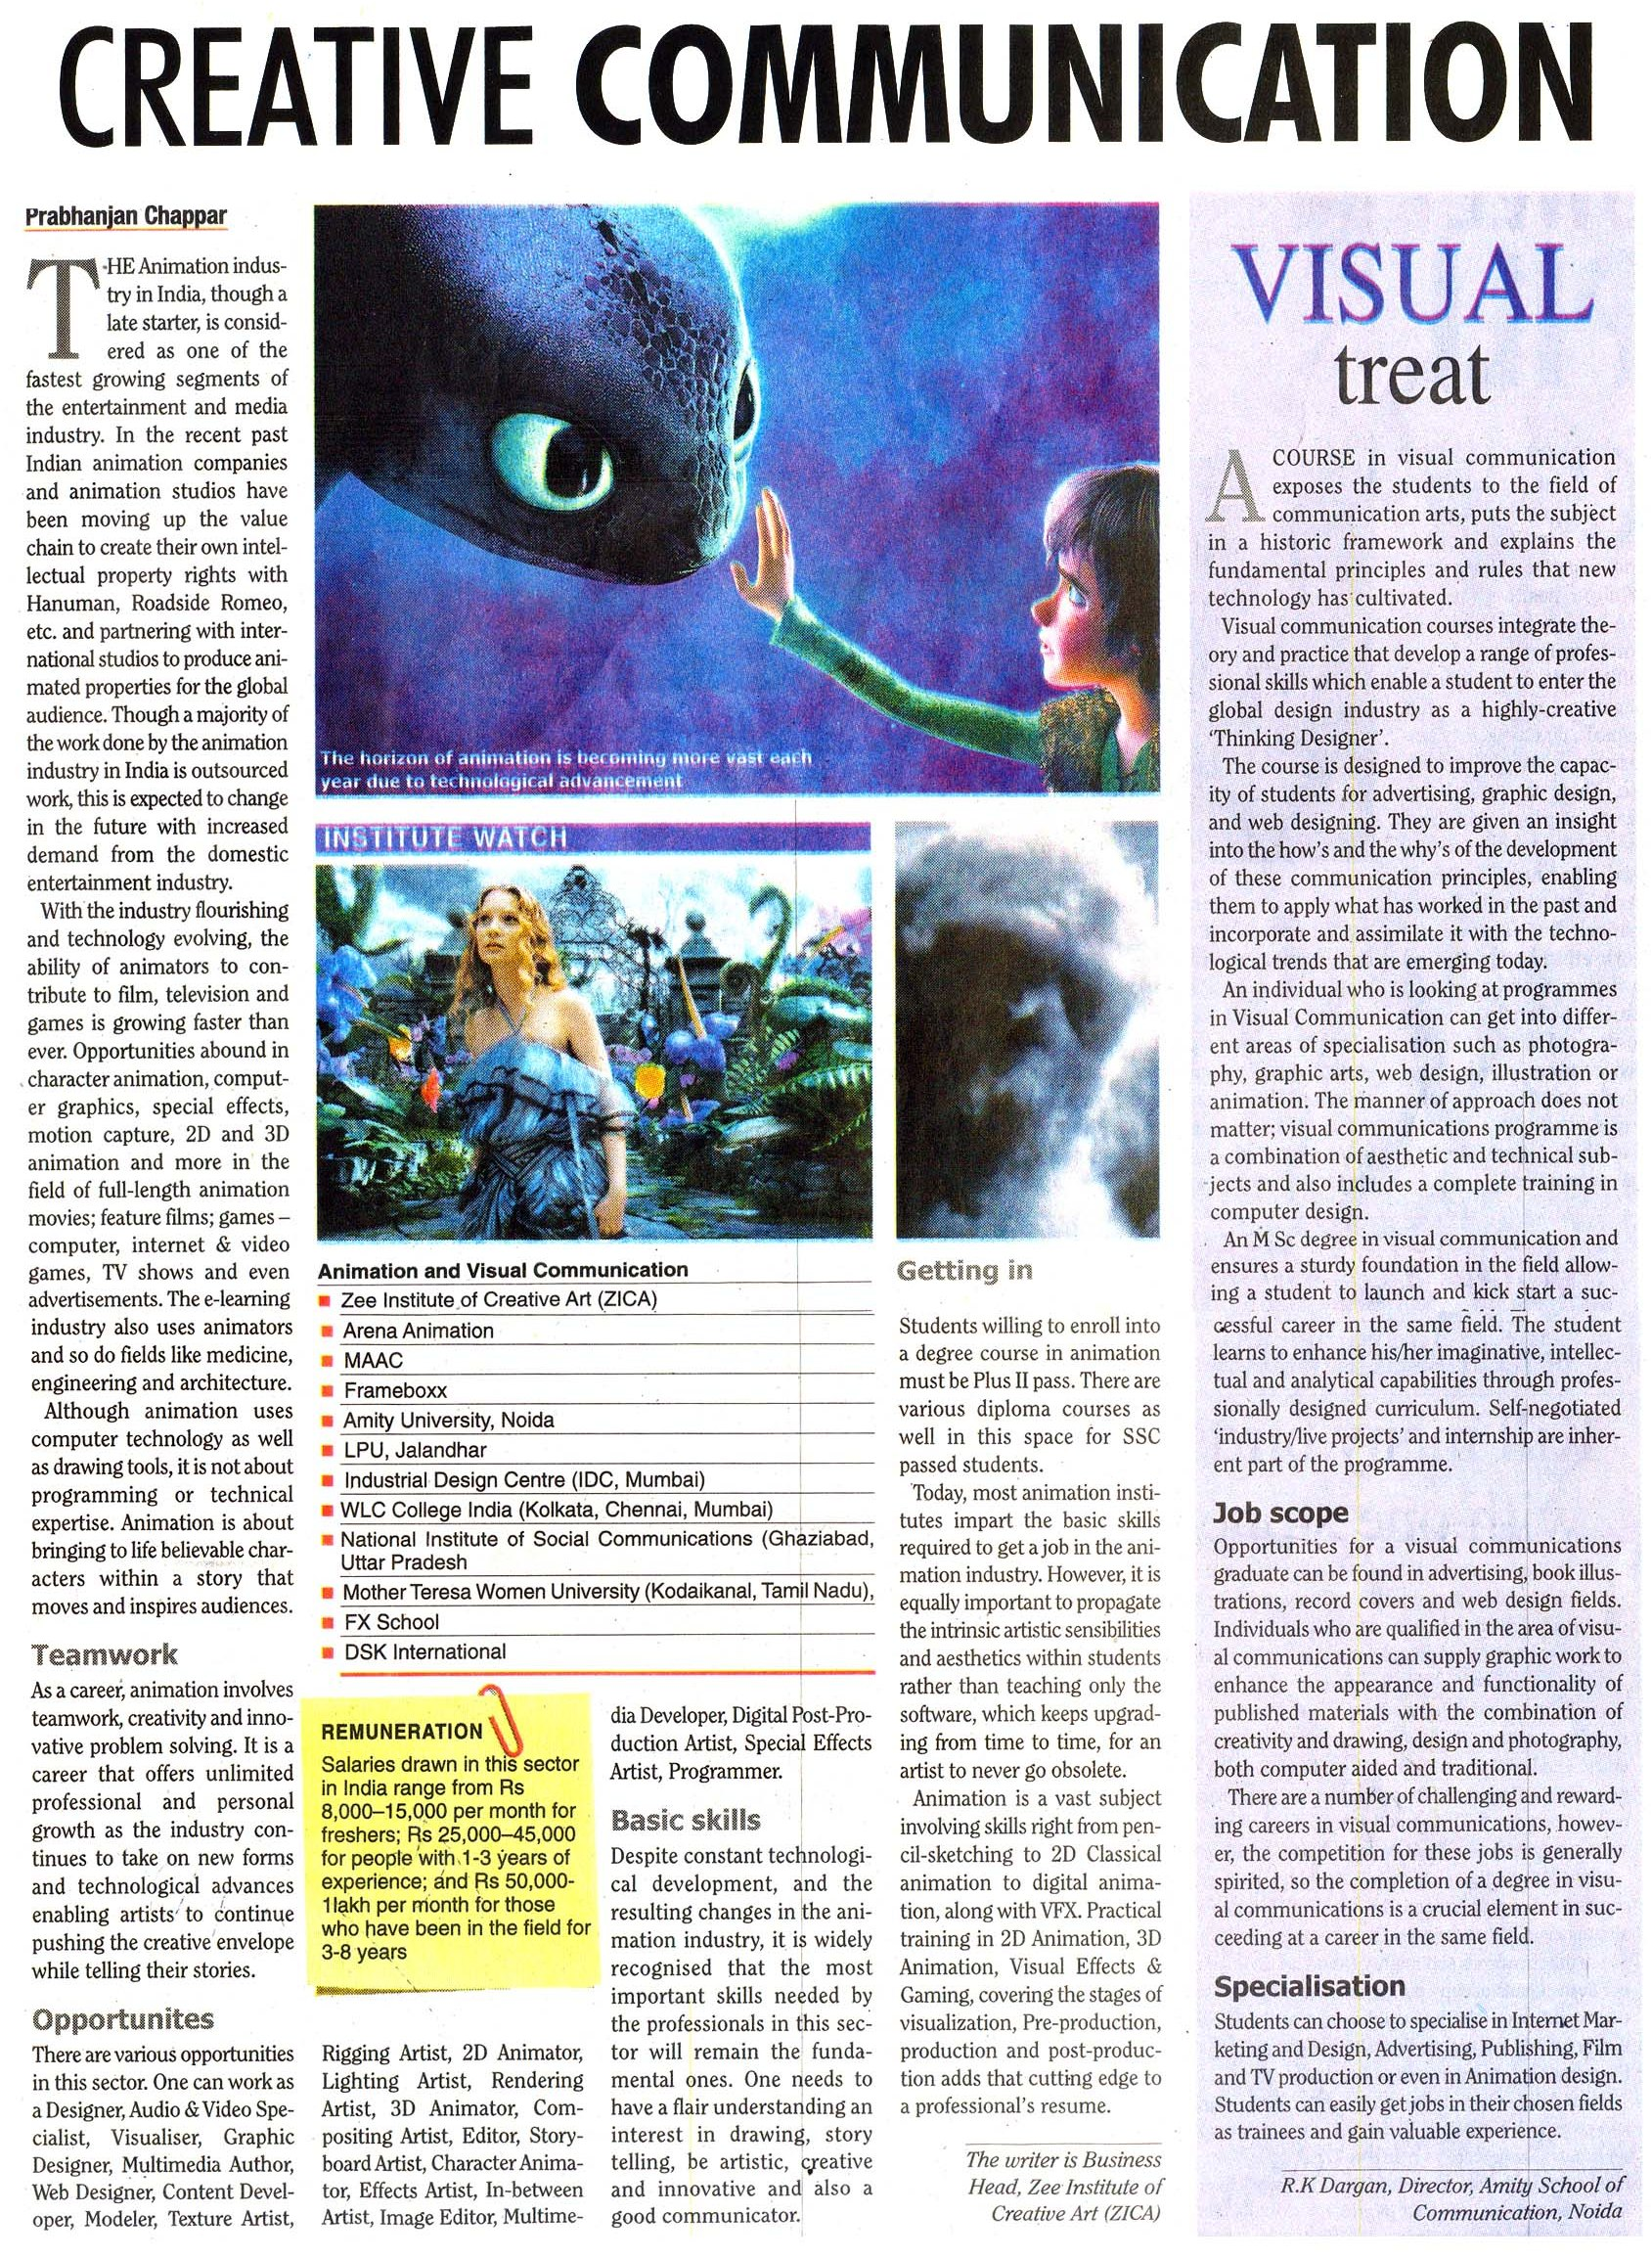 Carere in Creative Communication - Visual Treat - Article by Col